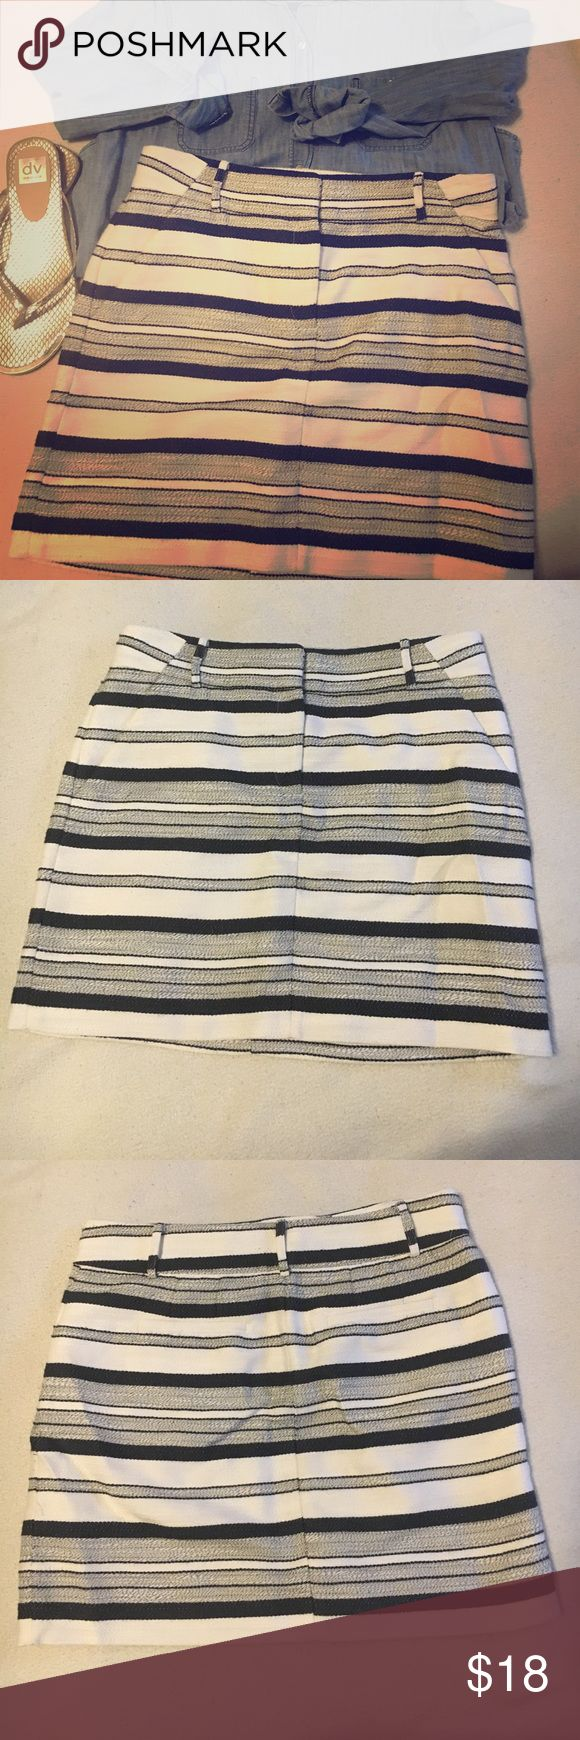 """NWOT LOFT white and navy striped skirt NWOT LOFT white and navy striped skirt. Lovely texture and lined. Has pockets in front and back and belt loops. Length of 17"""" and waist is 16.5"""". This would look great with a chambray shirt! LOFT Skirts"""